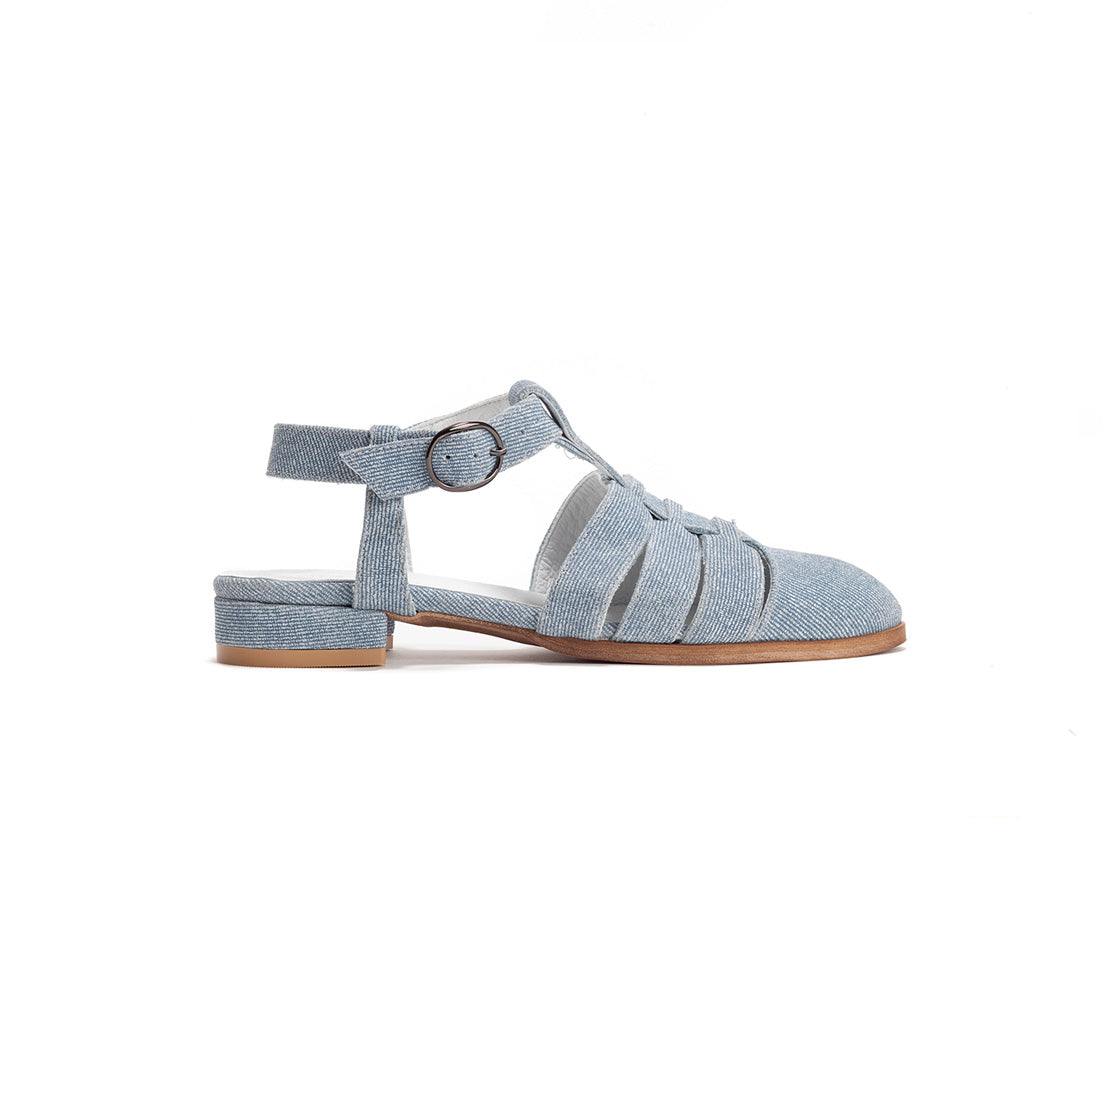 Lizzie - Fisherman Leather Sandals